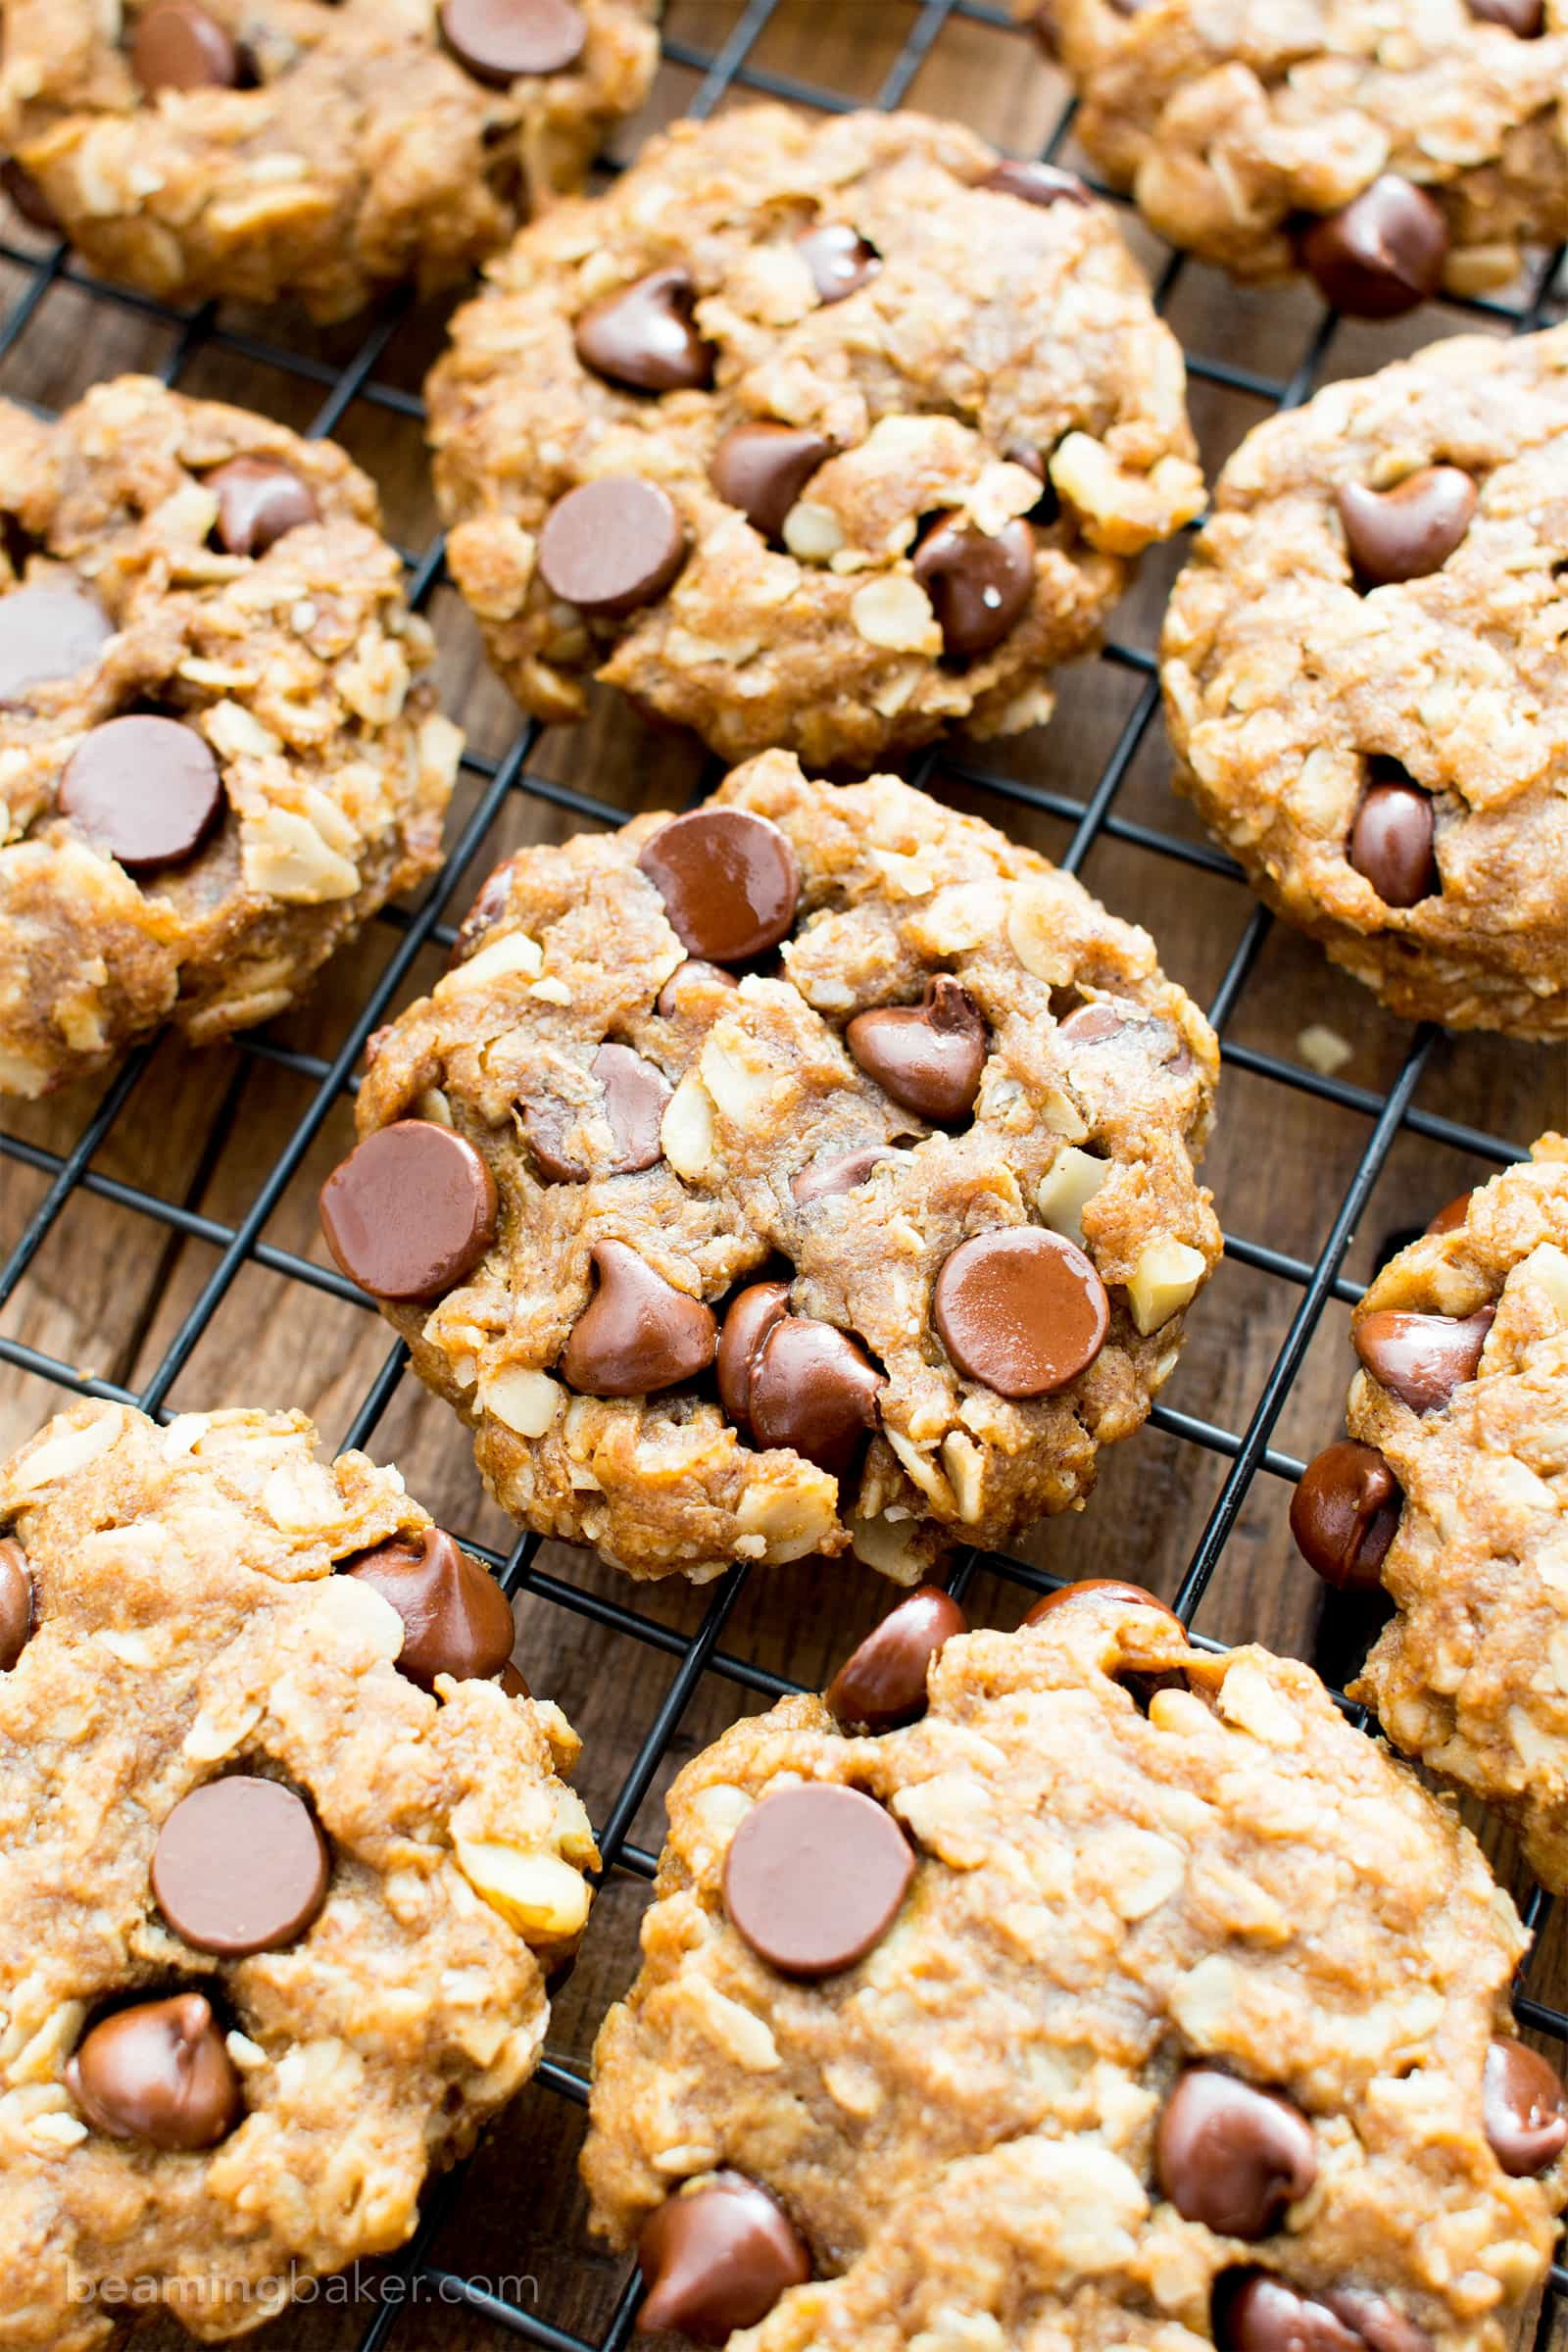 Chocolate Chip Peanut Butter Cookies  Easy Gluten Free Peanut Butter Chocolate Chip Oatmeal